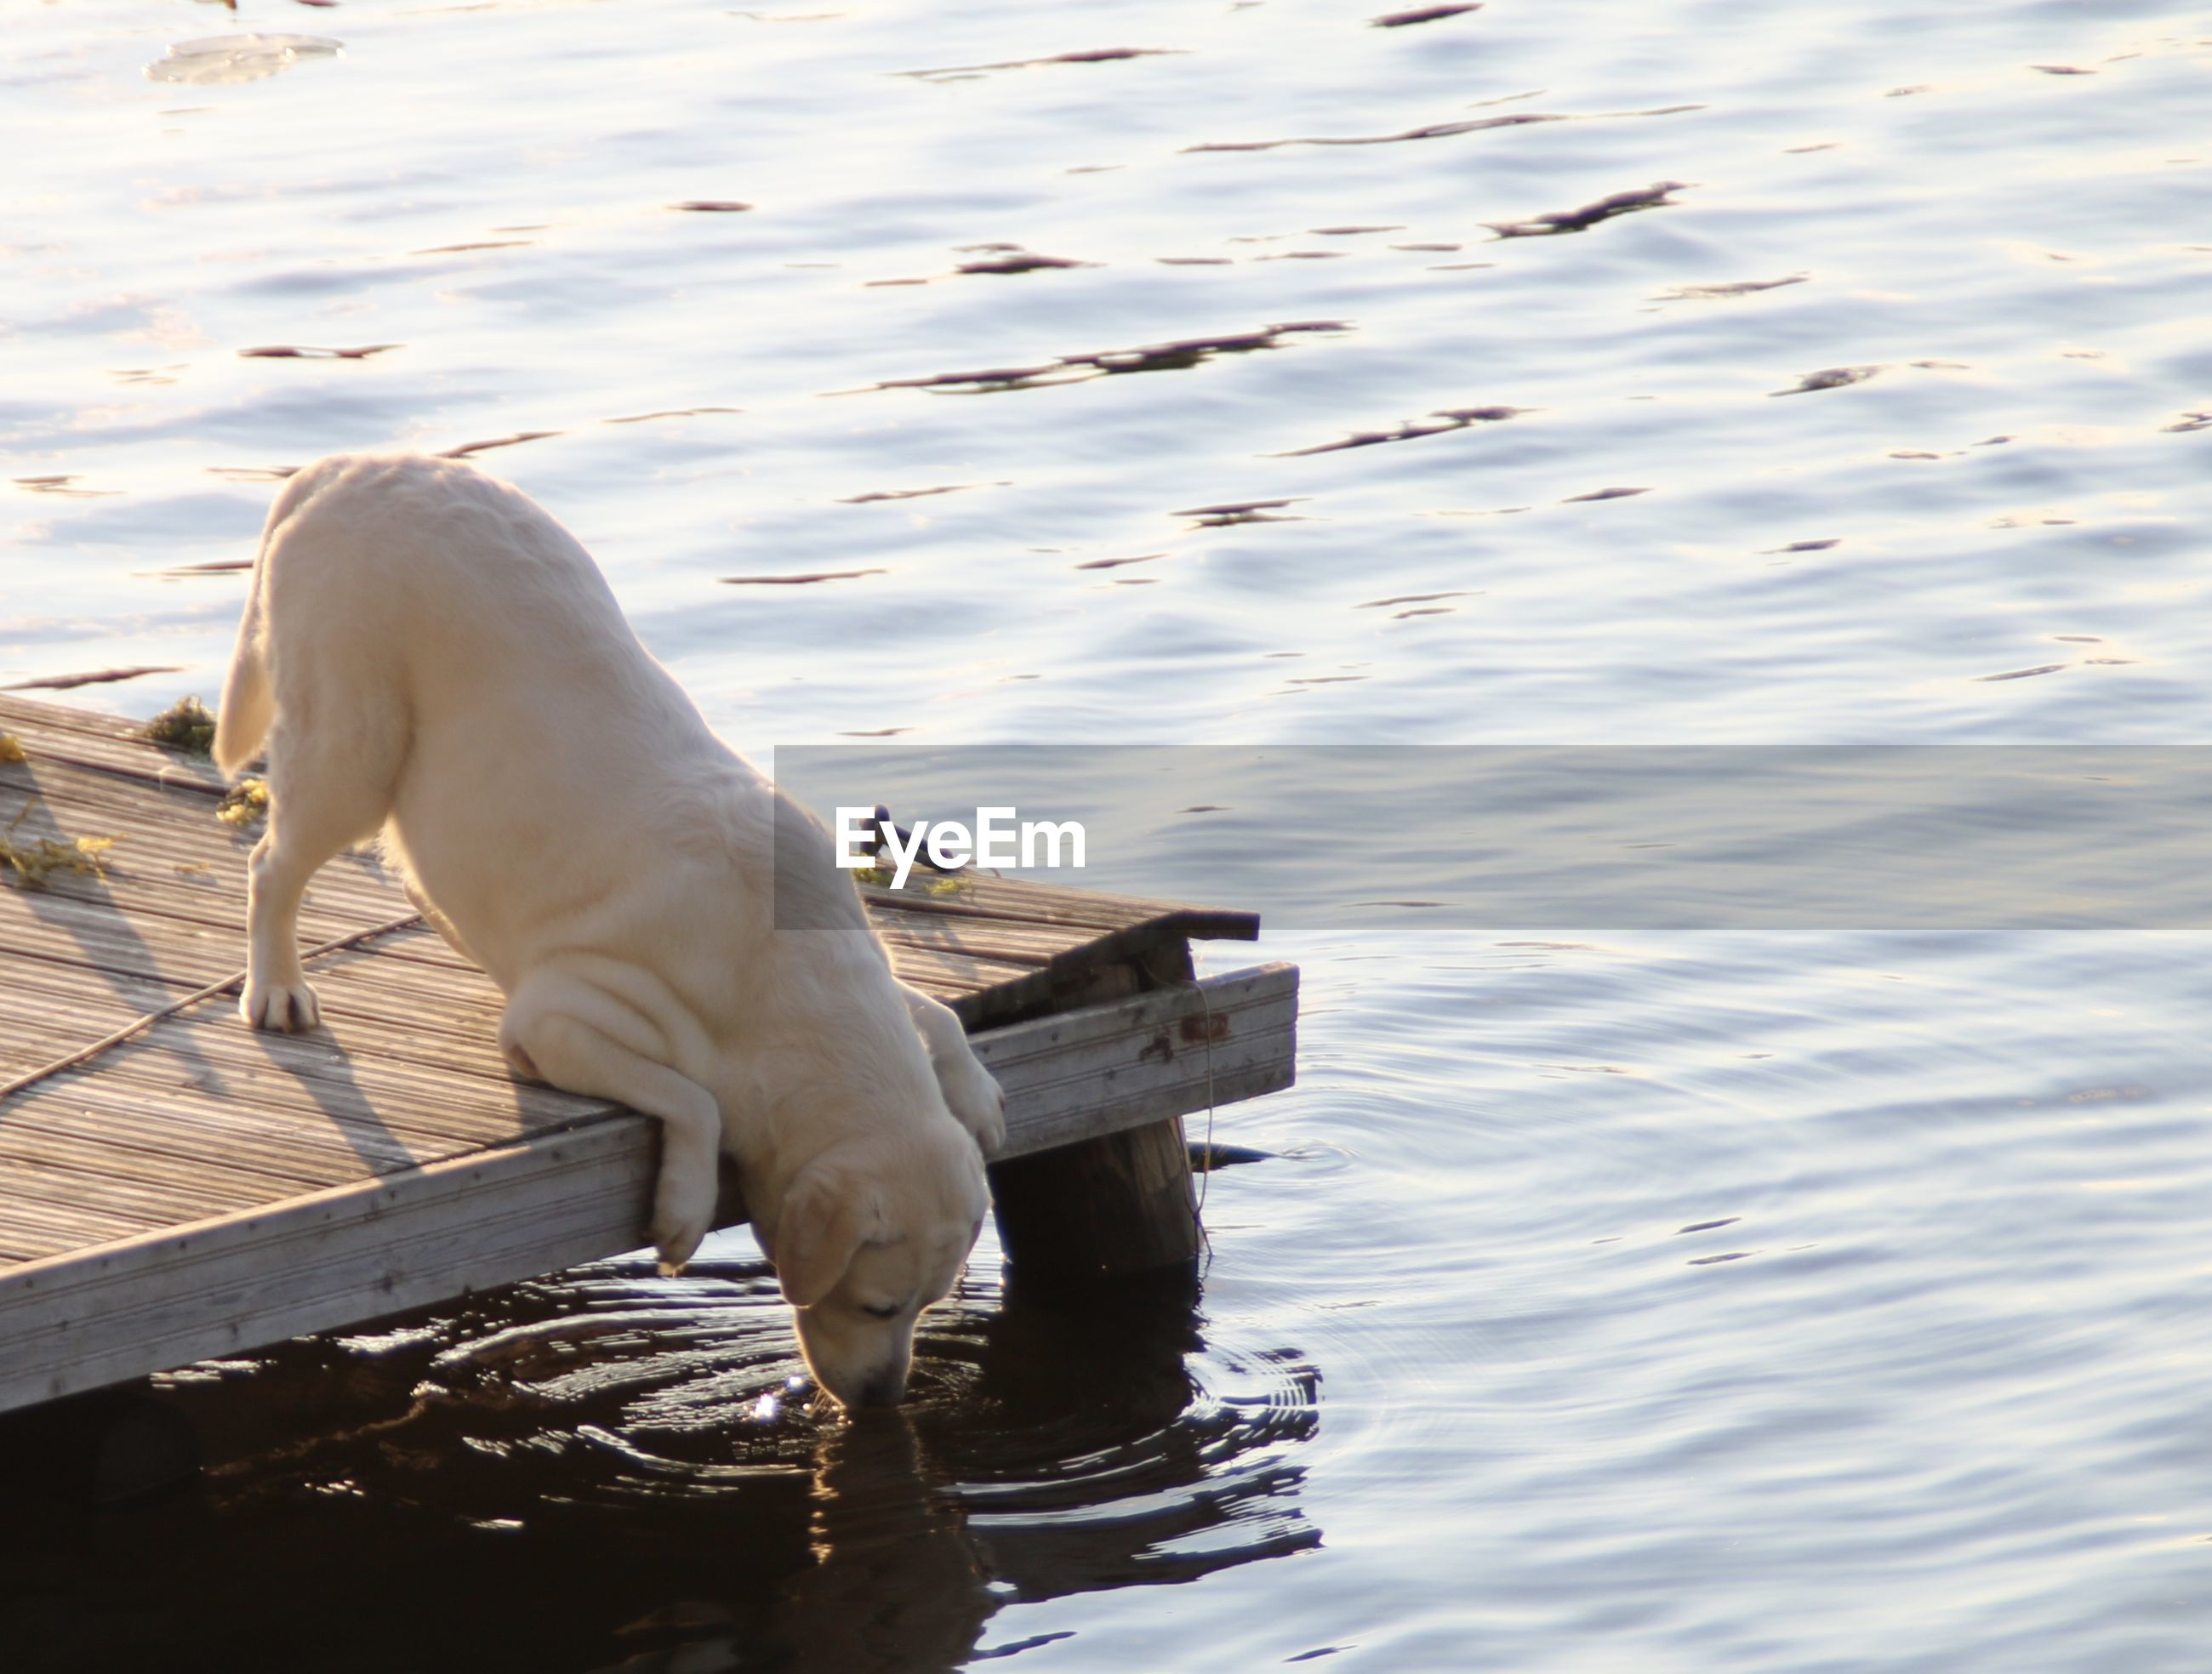 Dog drinking water off the edge of a jetty